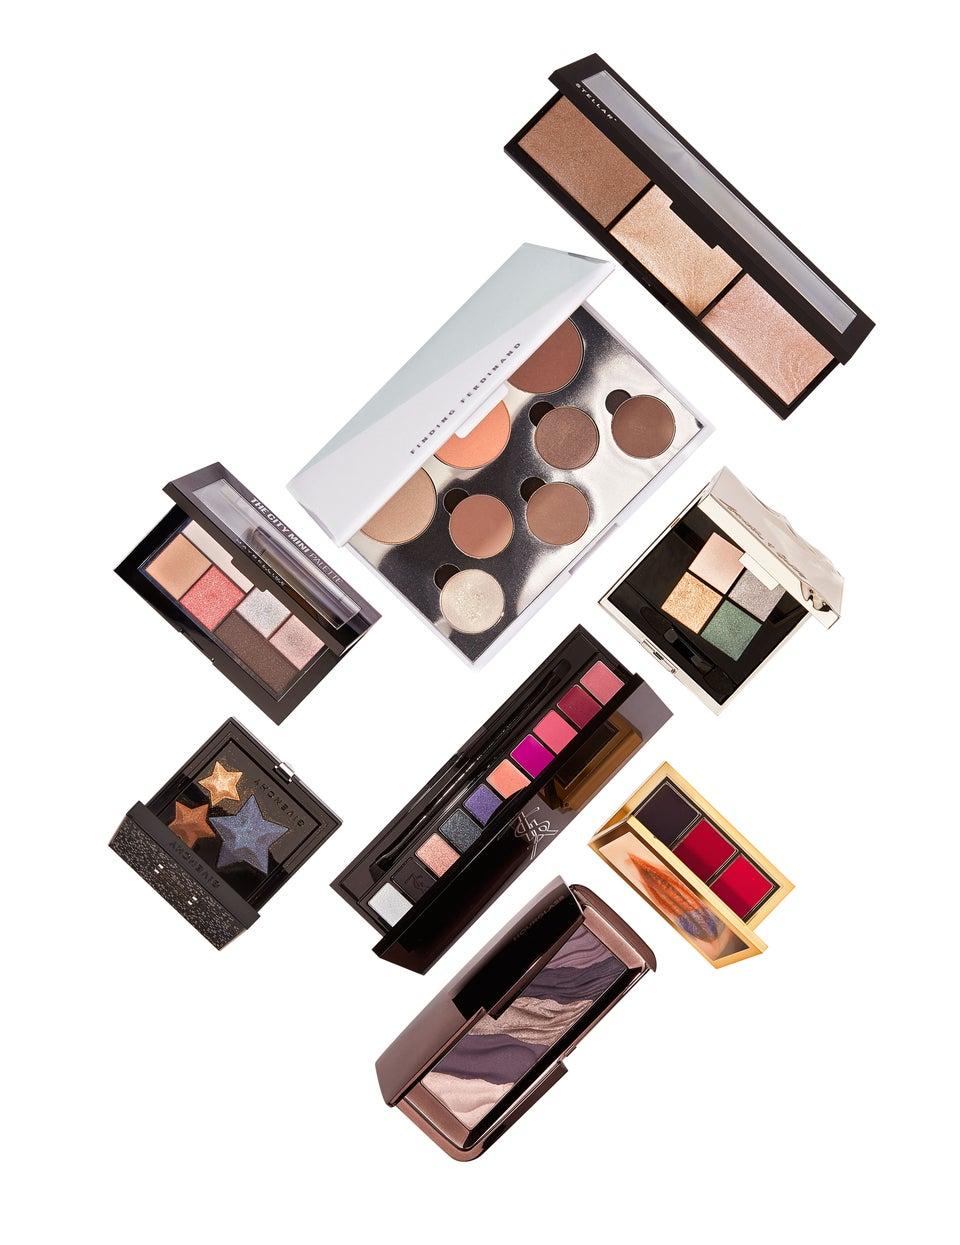 TheEye, Lip and Cheek Palettes You Need to Simplify Your Makeup Routine